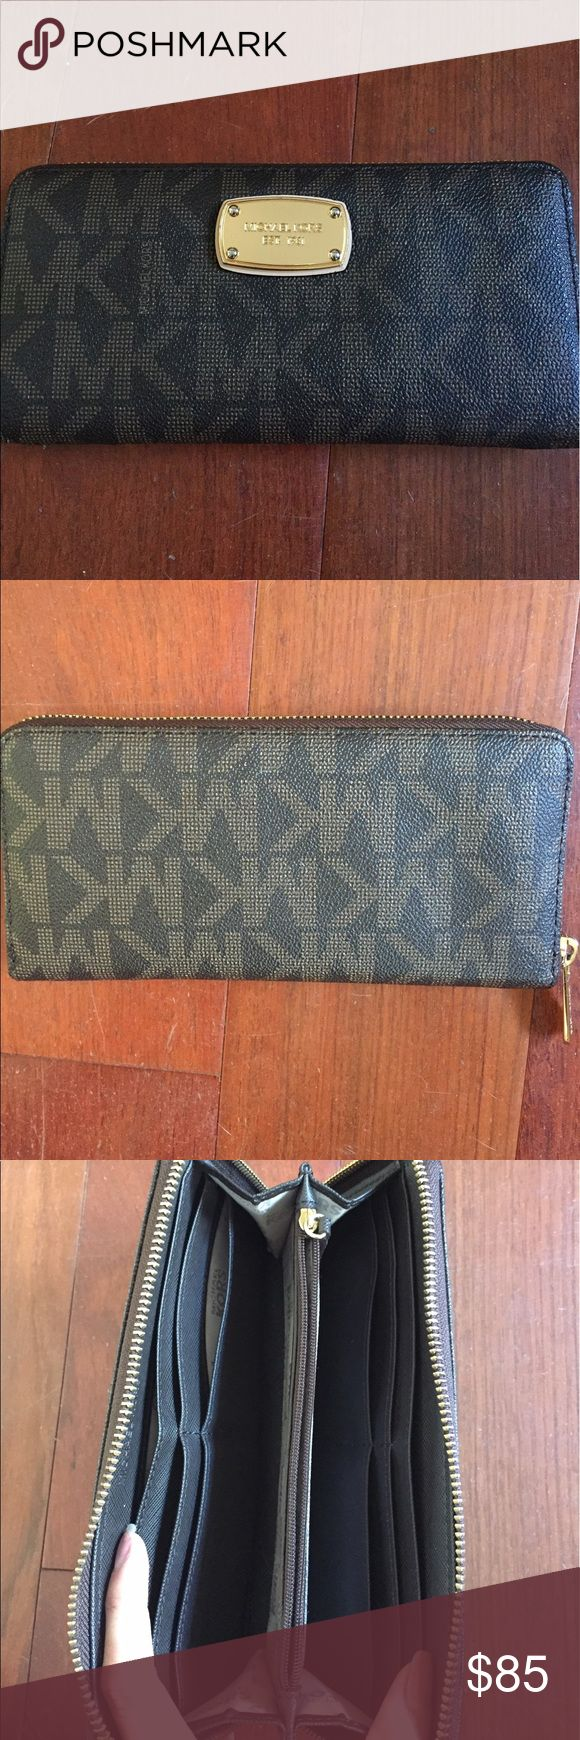 Authentic Michael Kors Continental Wallet Signature Jet Set item Zip Around Continental Wallet. Practically still like new! The name plate has a few scuffs as shown in the picture but overall almost in perfect condition! A good wallet that holds tons of things. Selling because I want a wallet in black instead to match my purse🙂 Michael Kors Bags Wallets